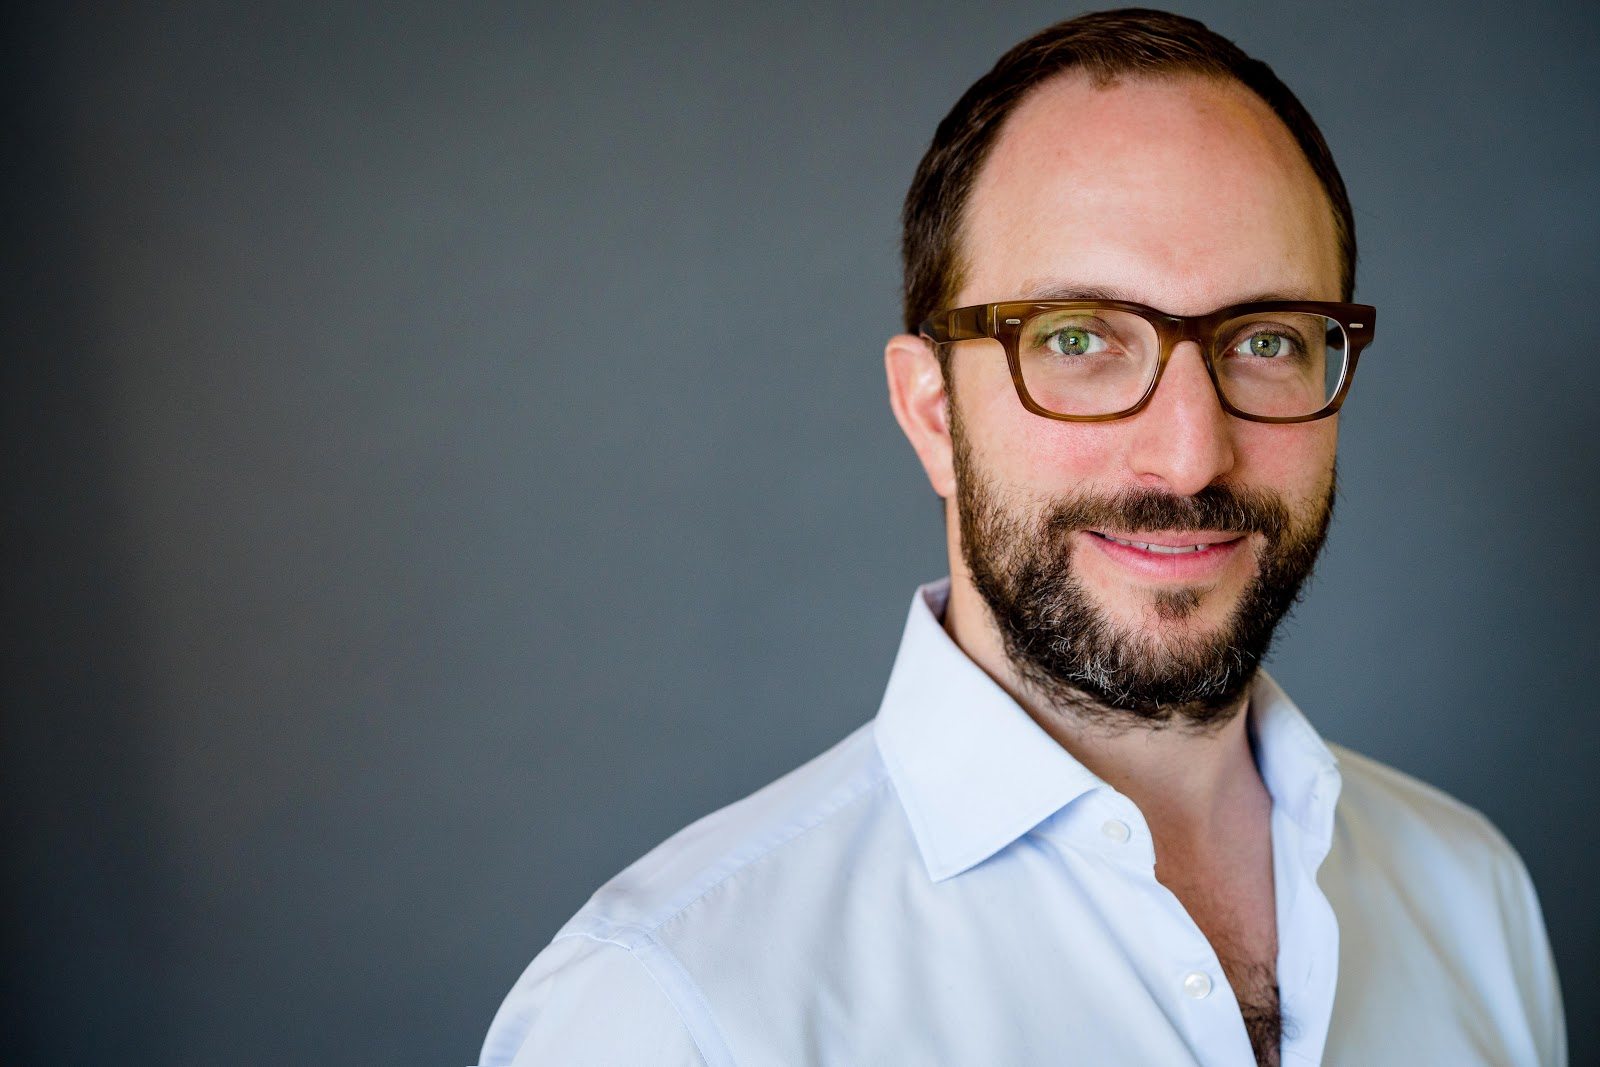 YellowPepper's CEO, Serge Elkiner